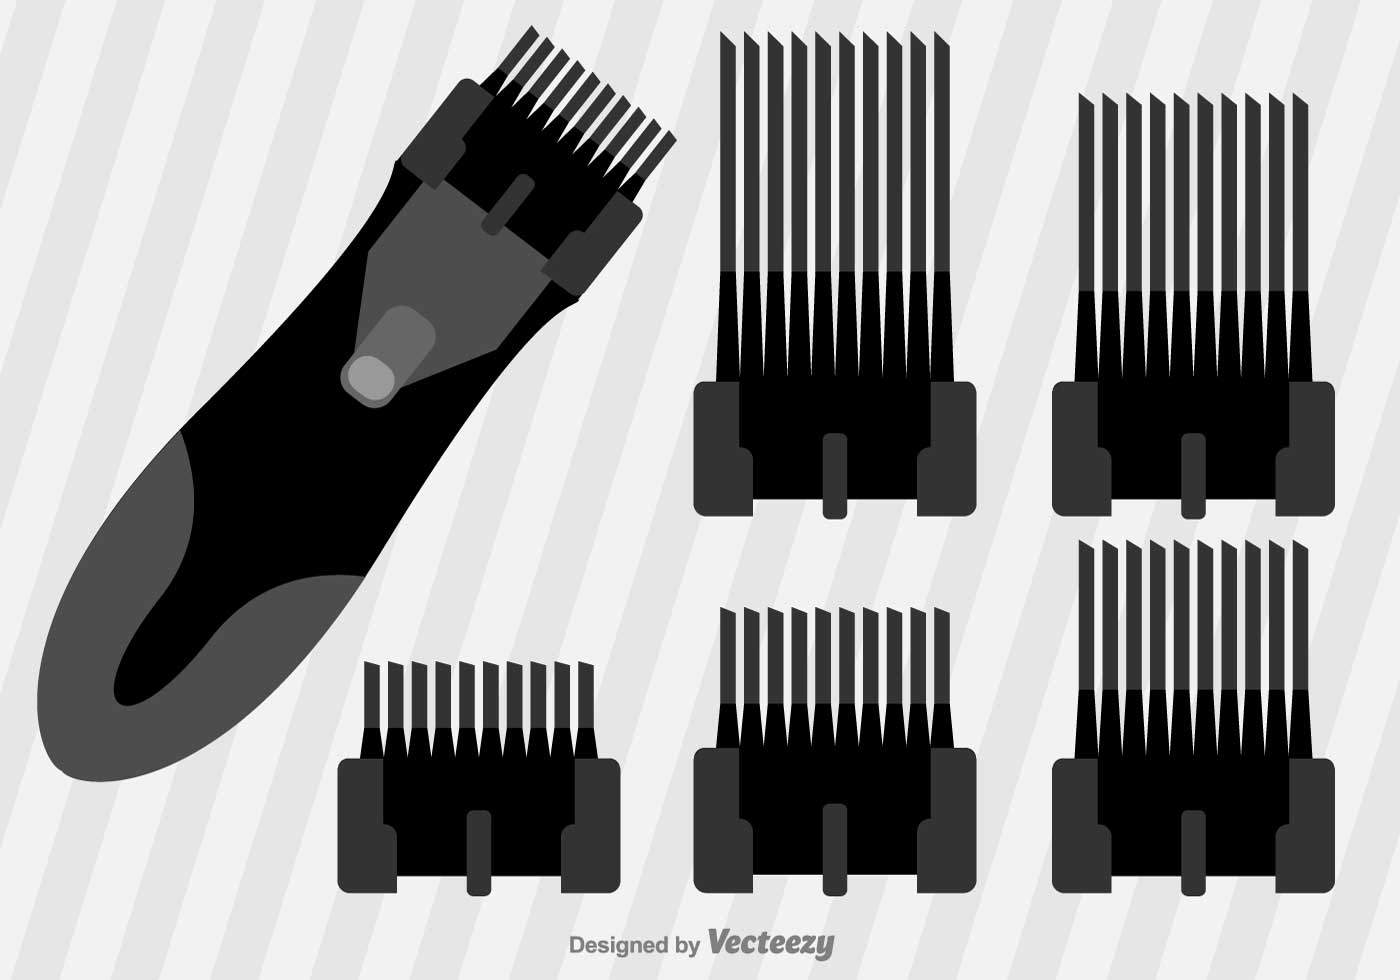 barber clippers vector